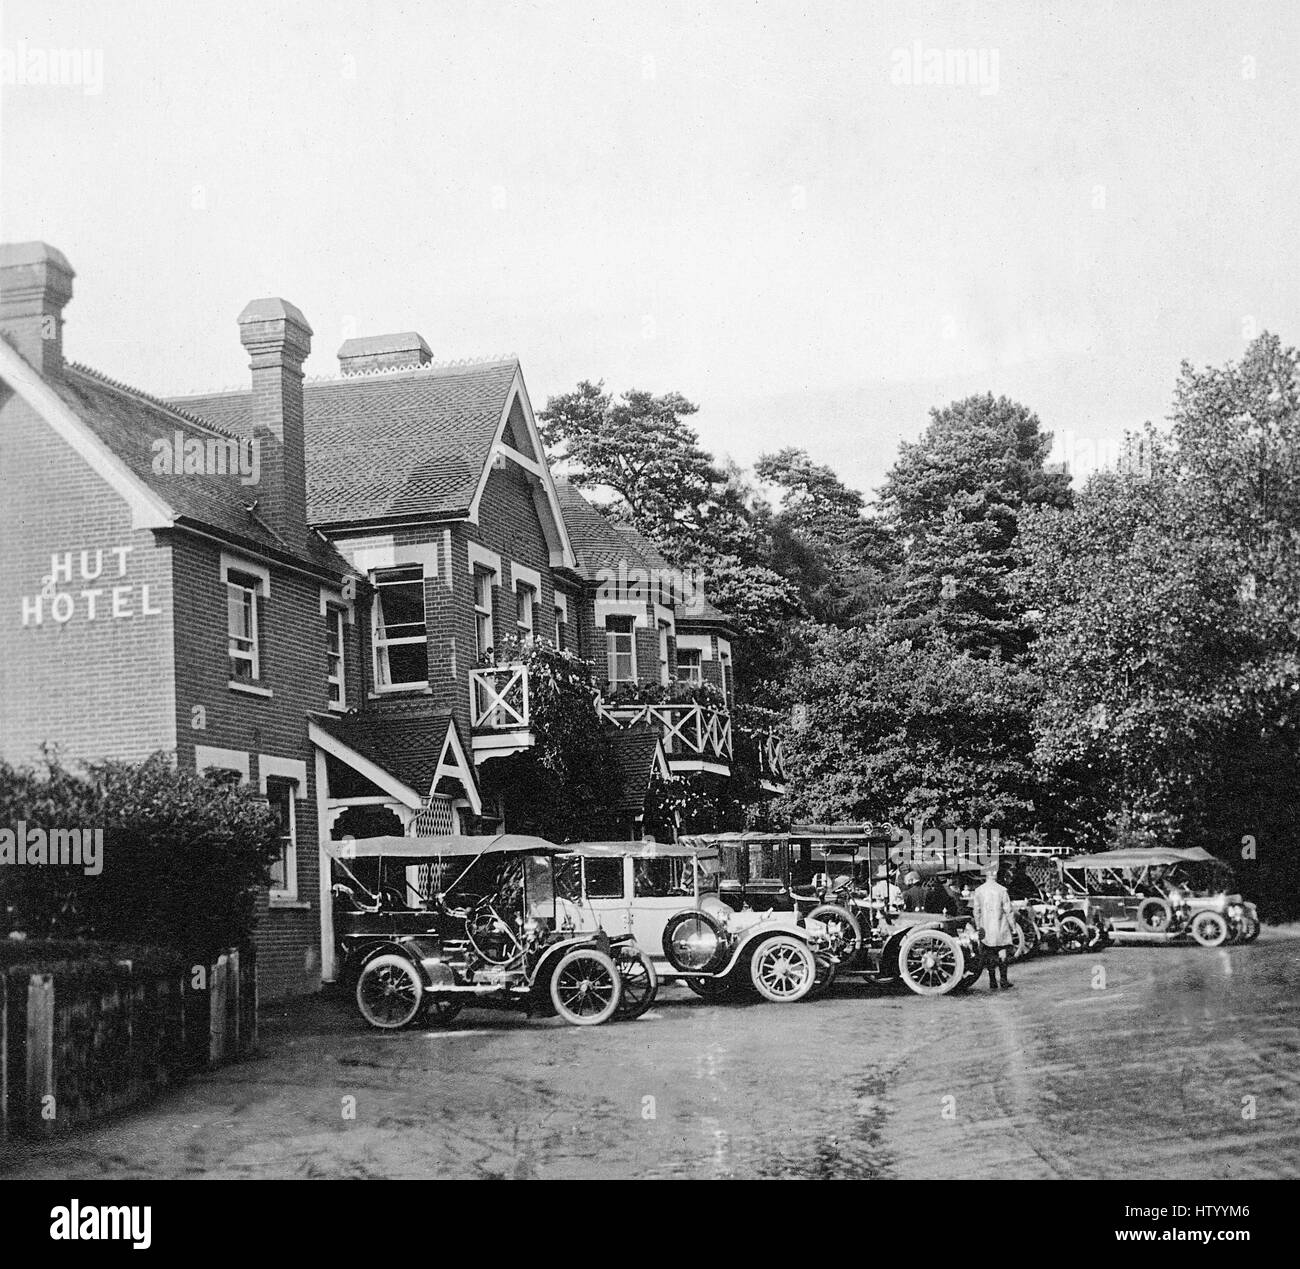 1911 Wisley Hut Hotel on A3 in Surrey - Stock Image